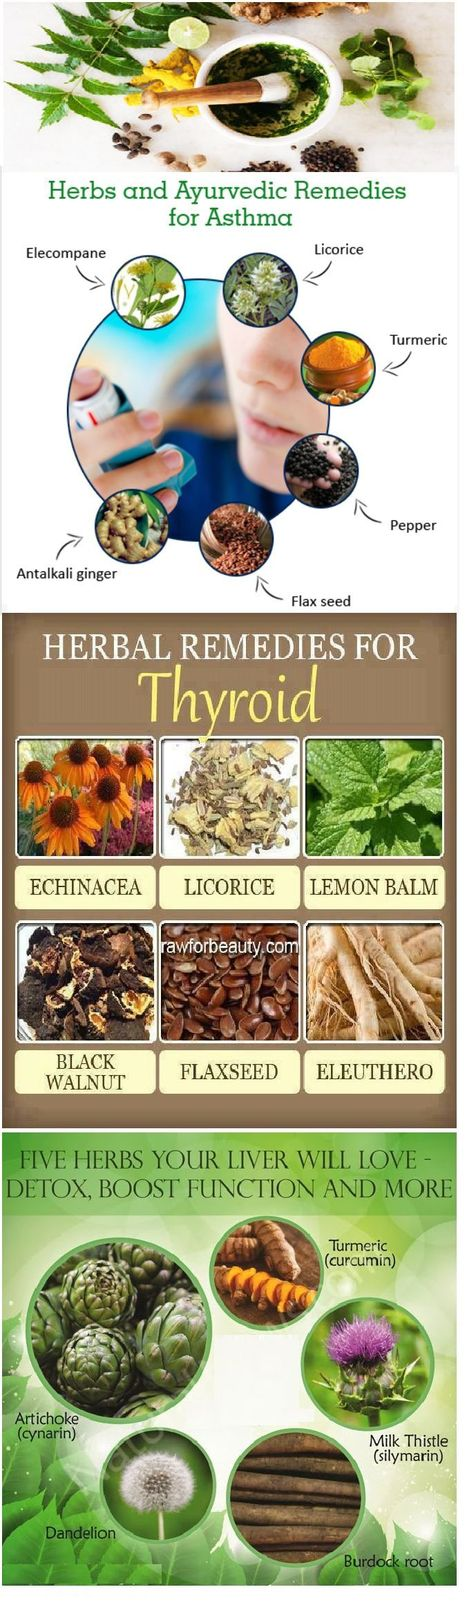 Ayurvedic Herbal Products and Remedies | Health & Digital Techn Magazine - 2016 | Scoop.it